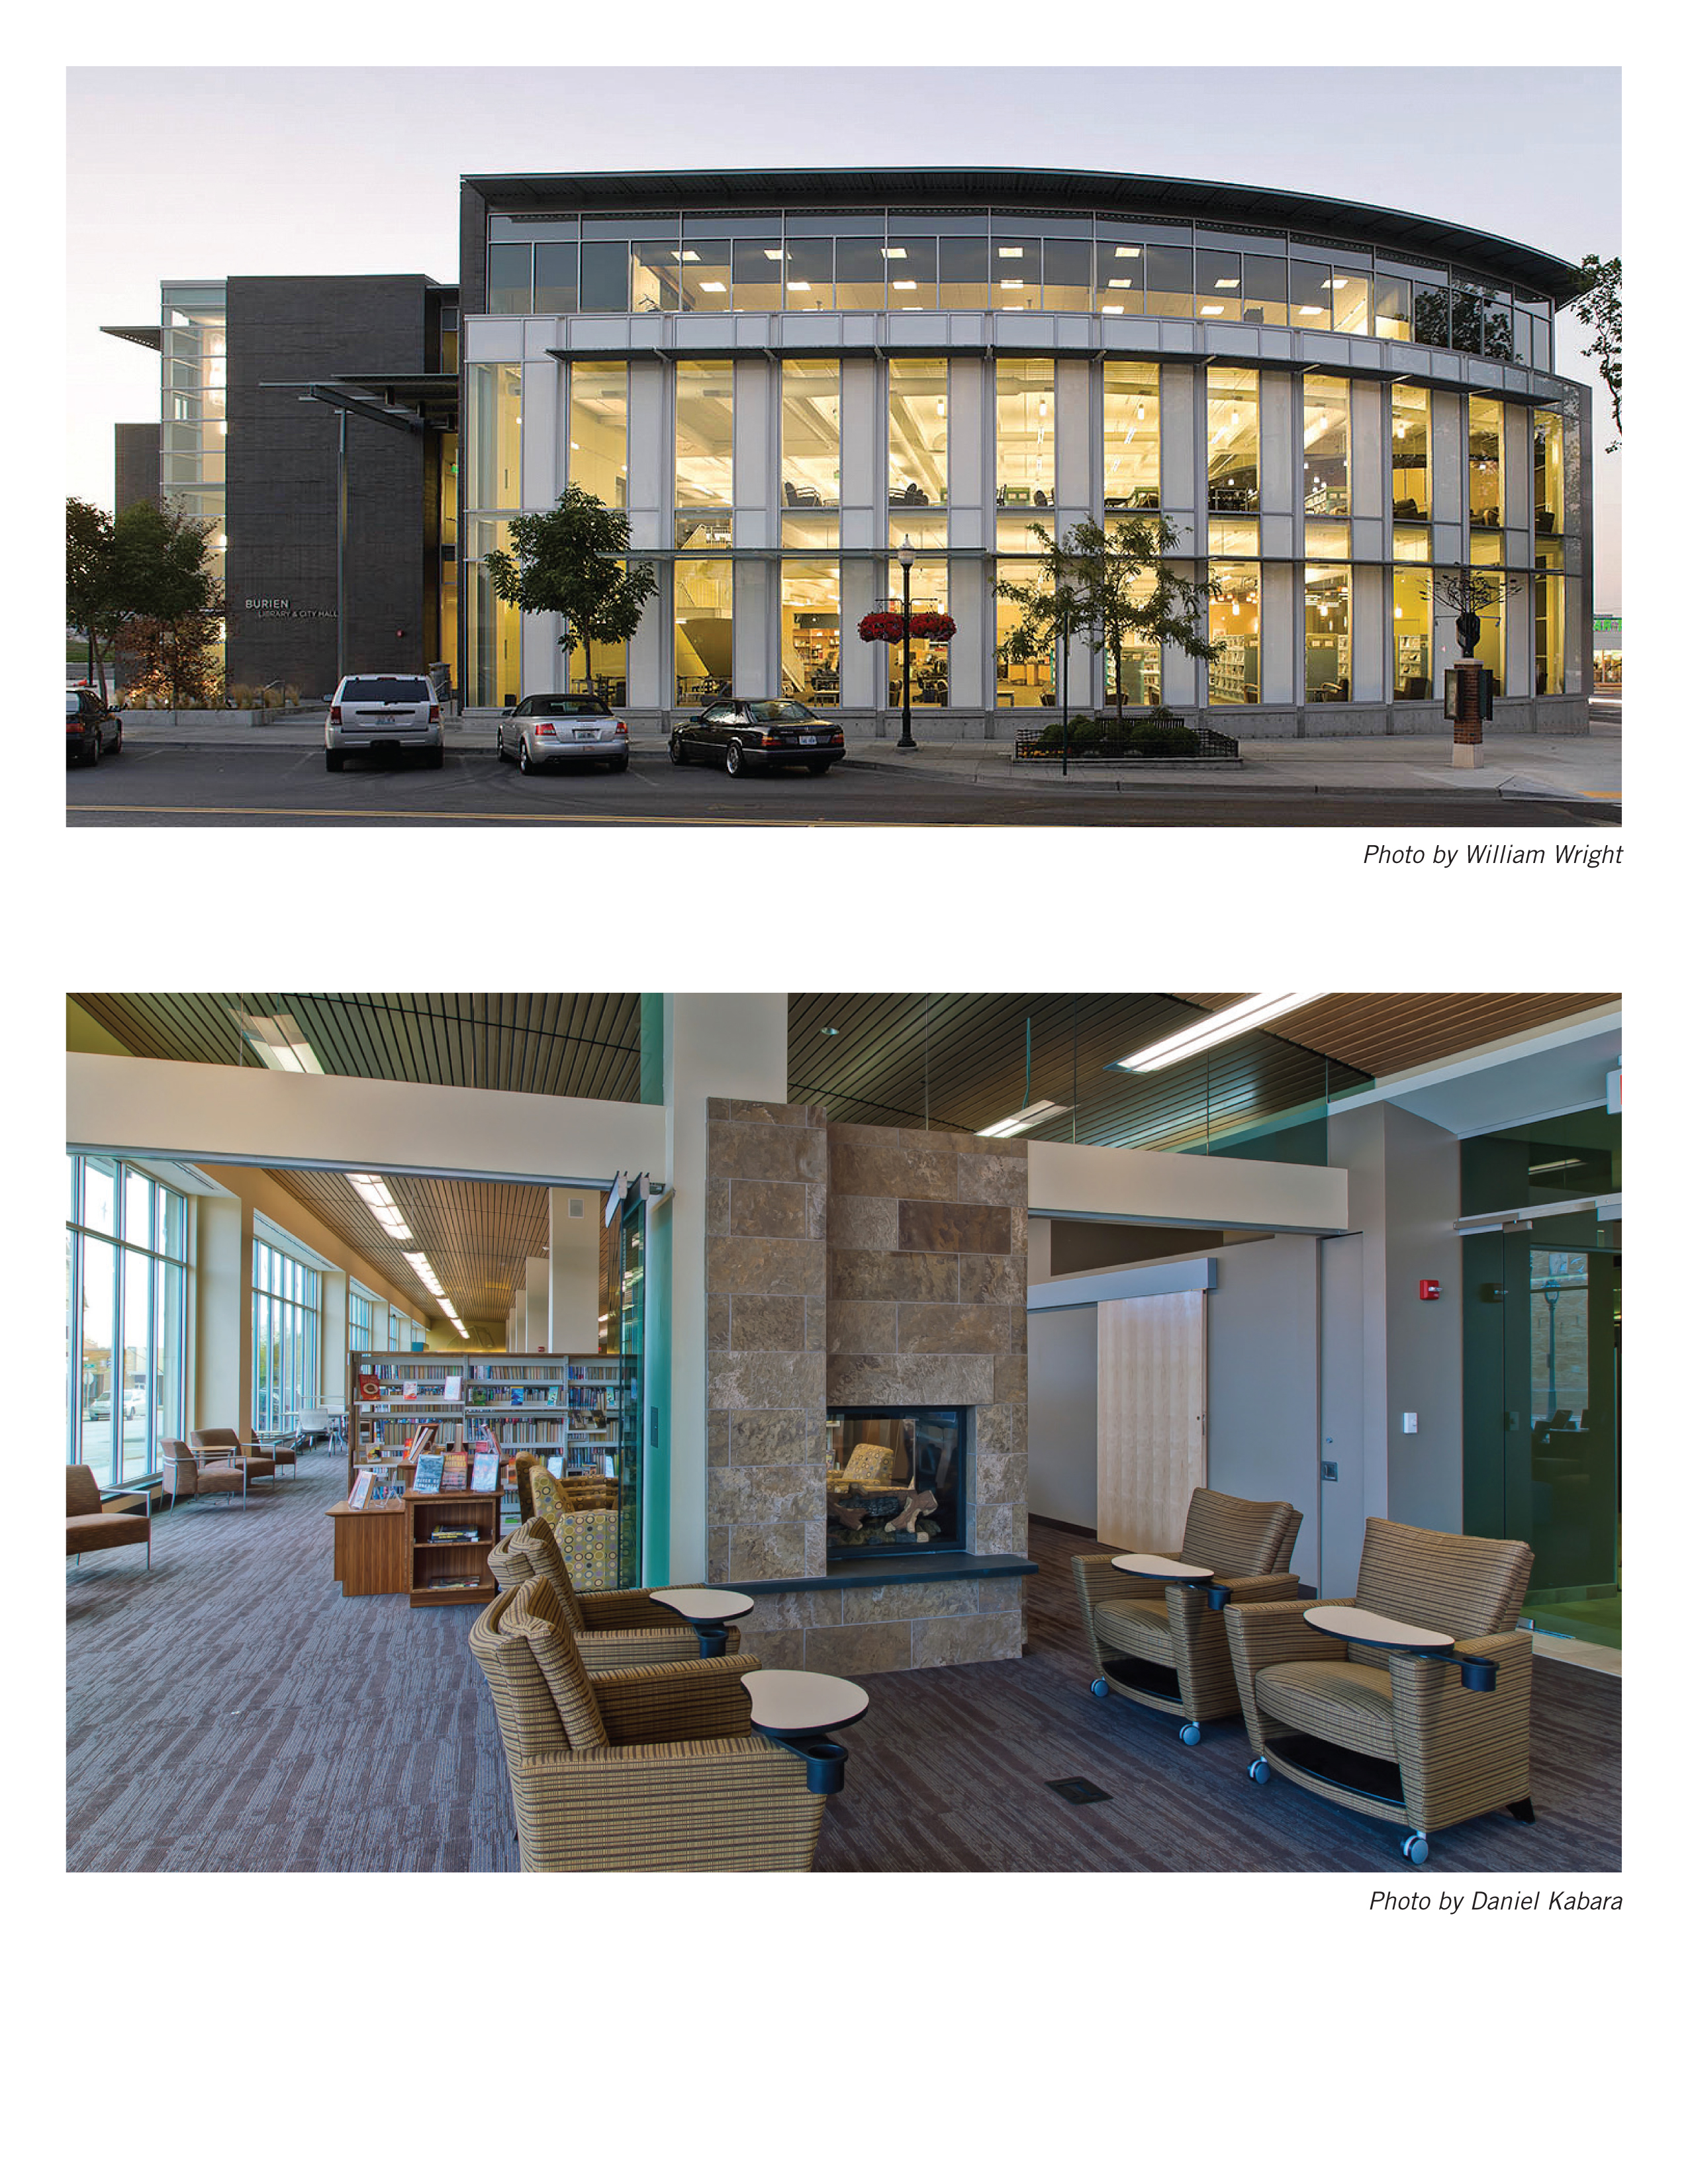 Powerful Partnerships: Mixed-Use Development | Library by Design, Spring 2012